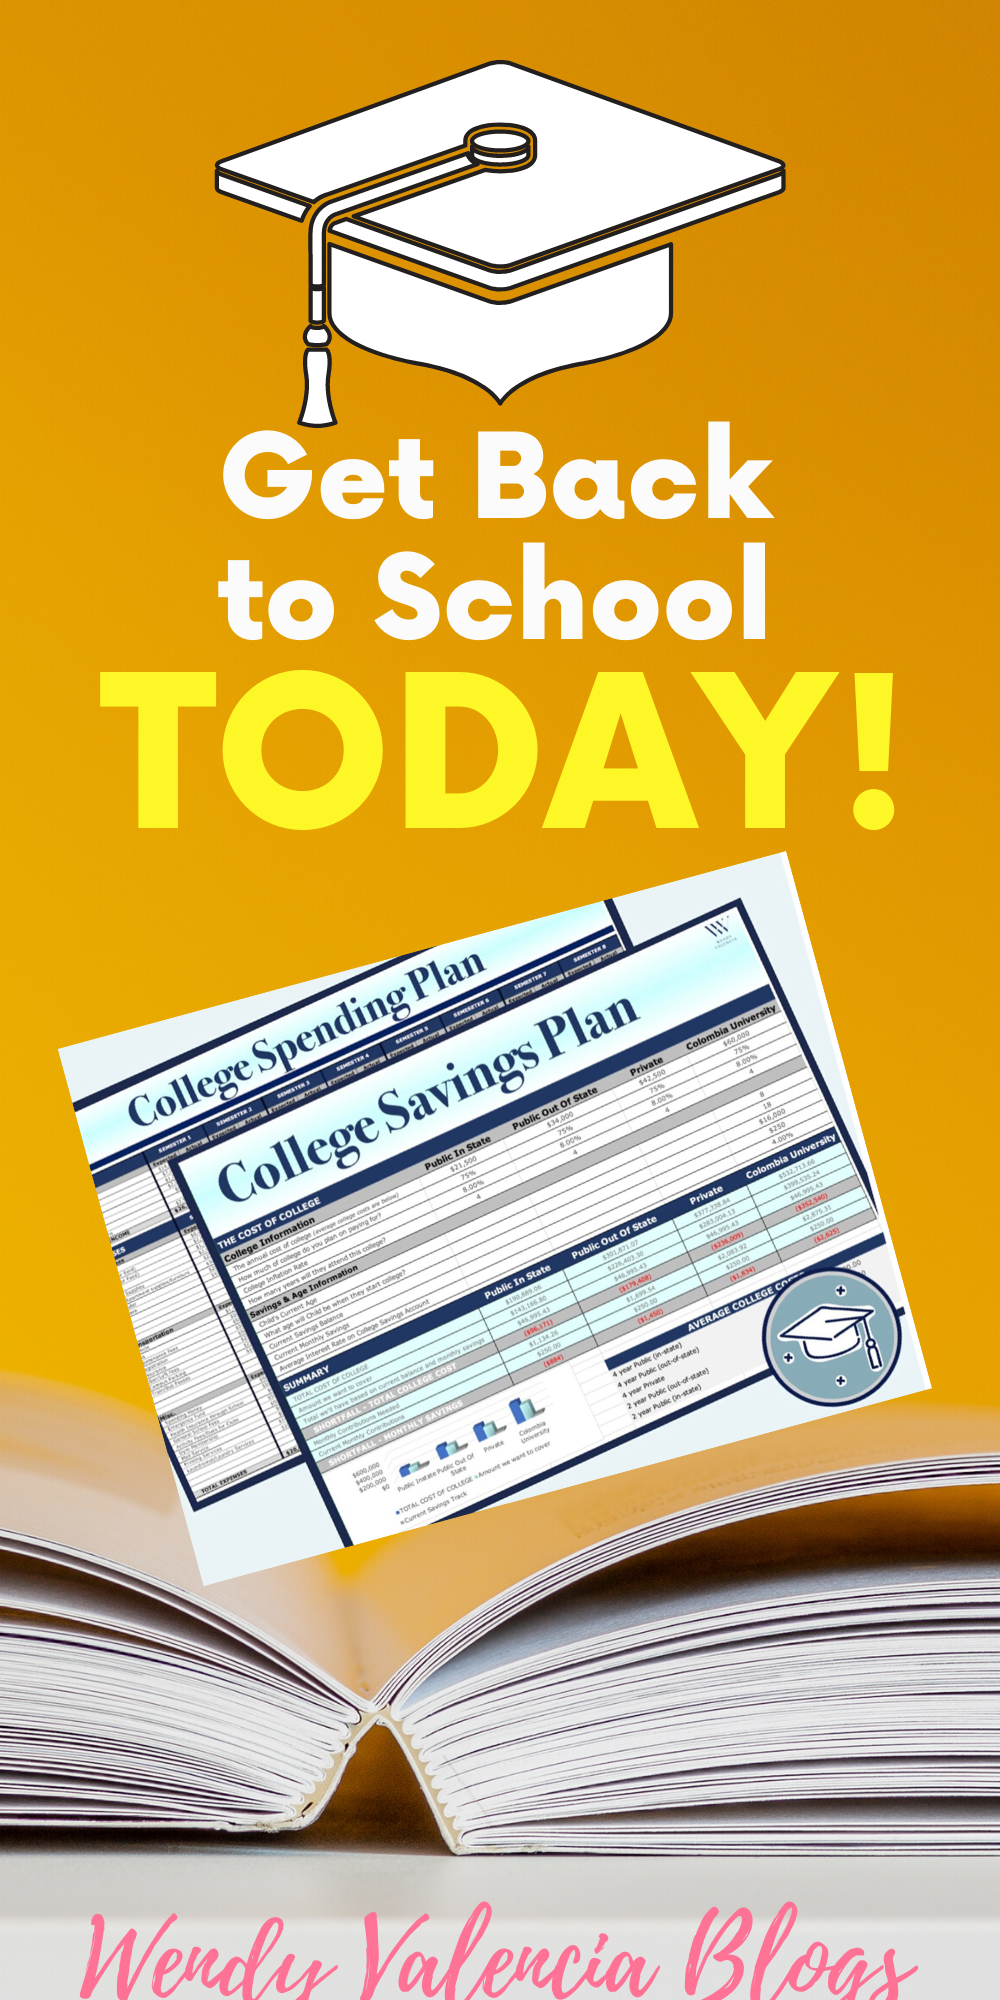 College Savings Plan College Cost Calculator College Budget By Semester Wendy Valencia College Savings Plans College Costs Savings Plan